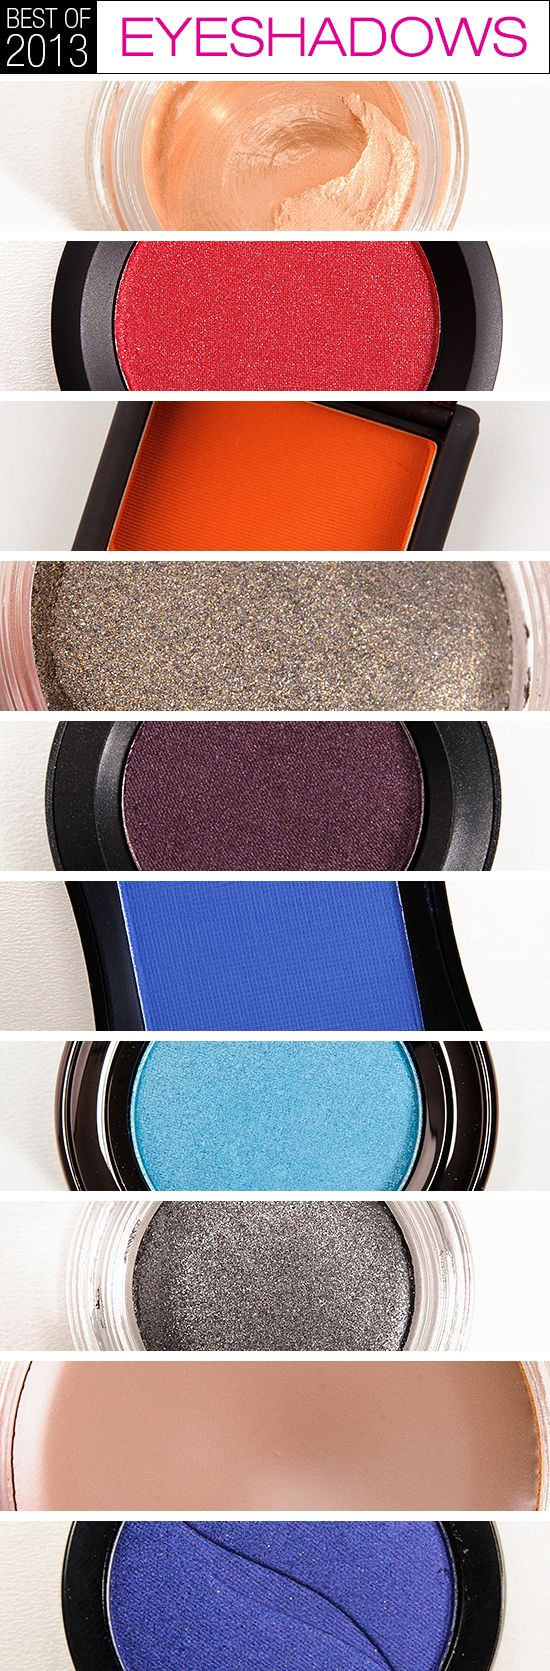 Top 10 of 2013: Best Eyeshadows (Cream & Powder)